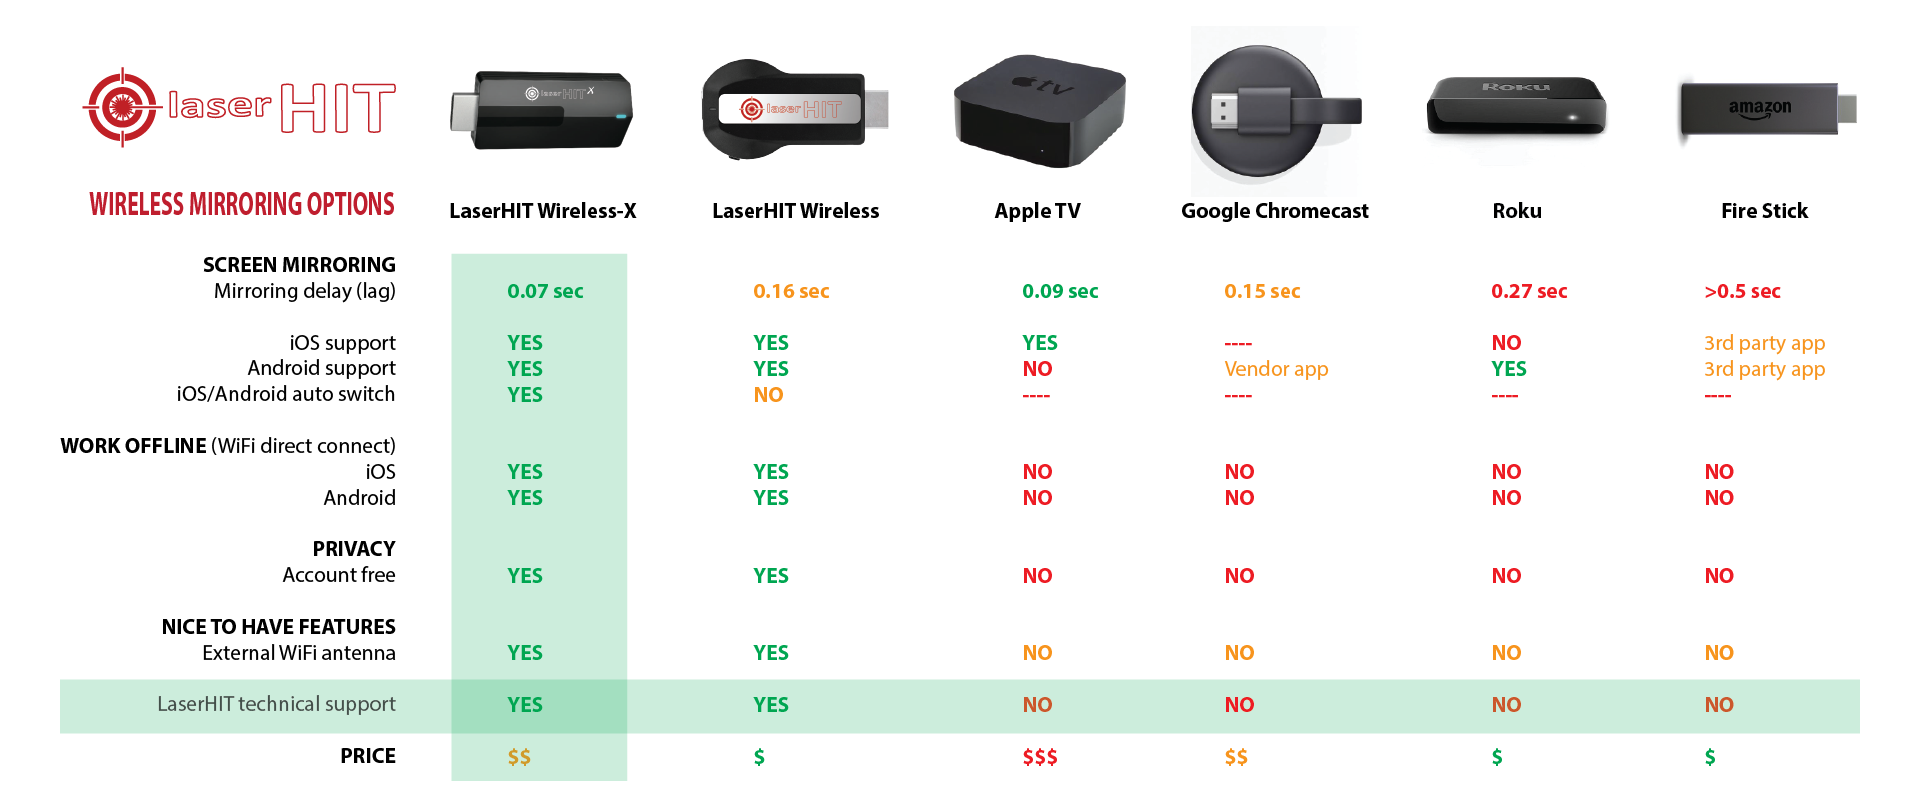 devices-chart-01.png